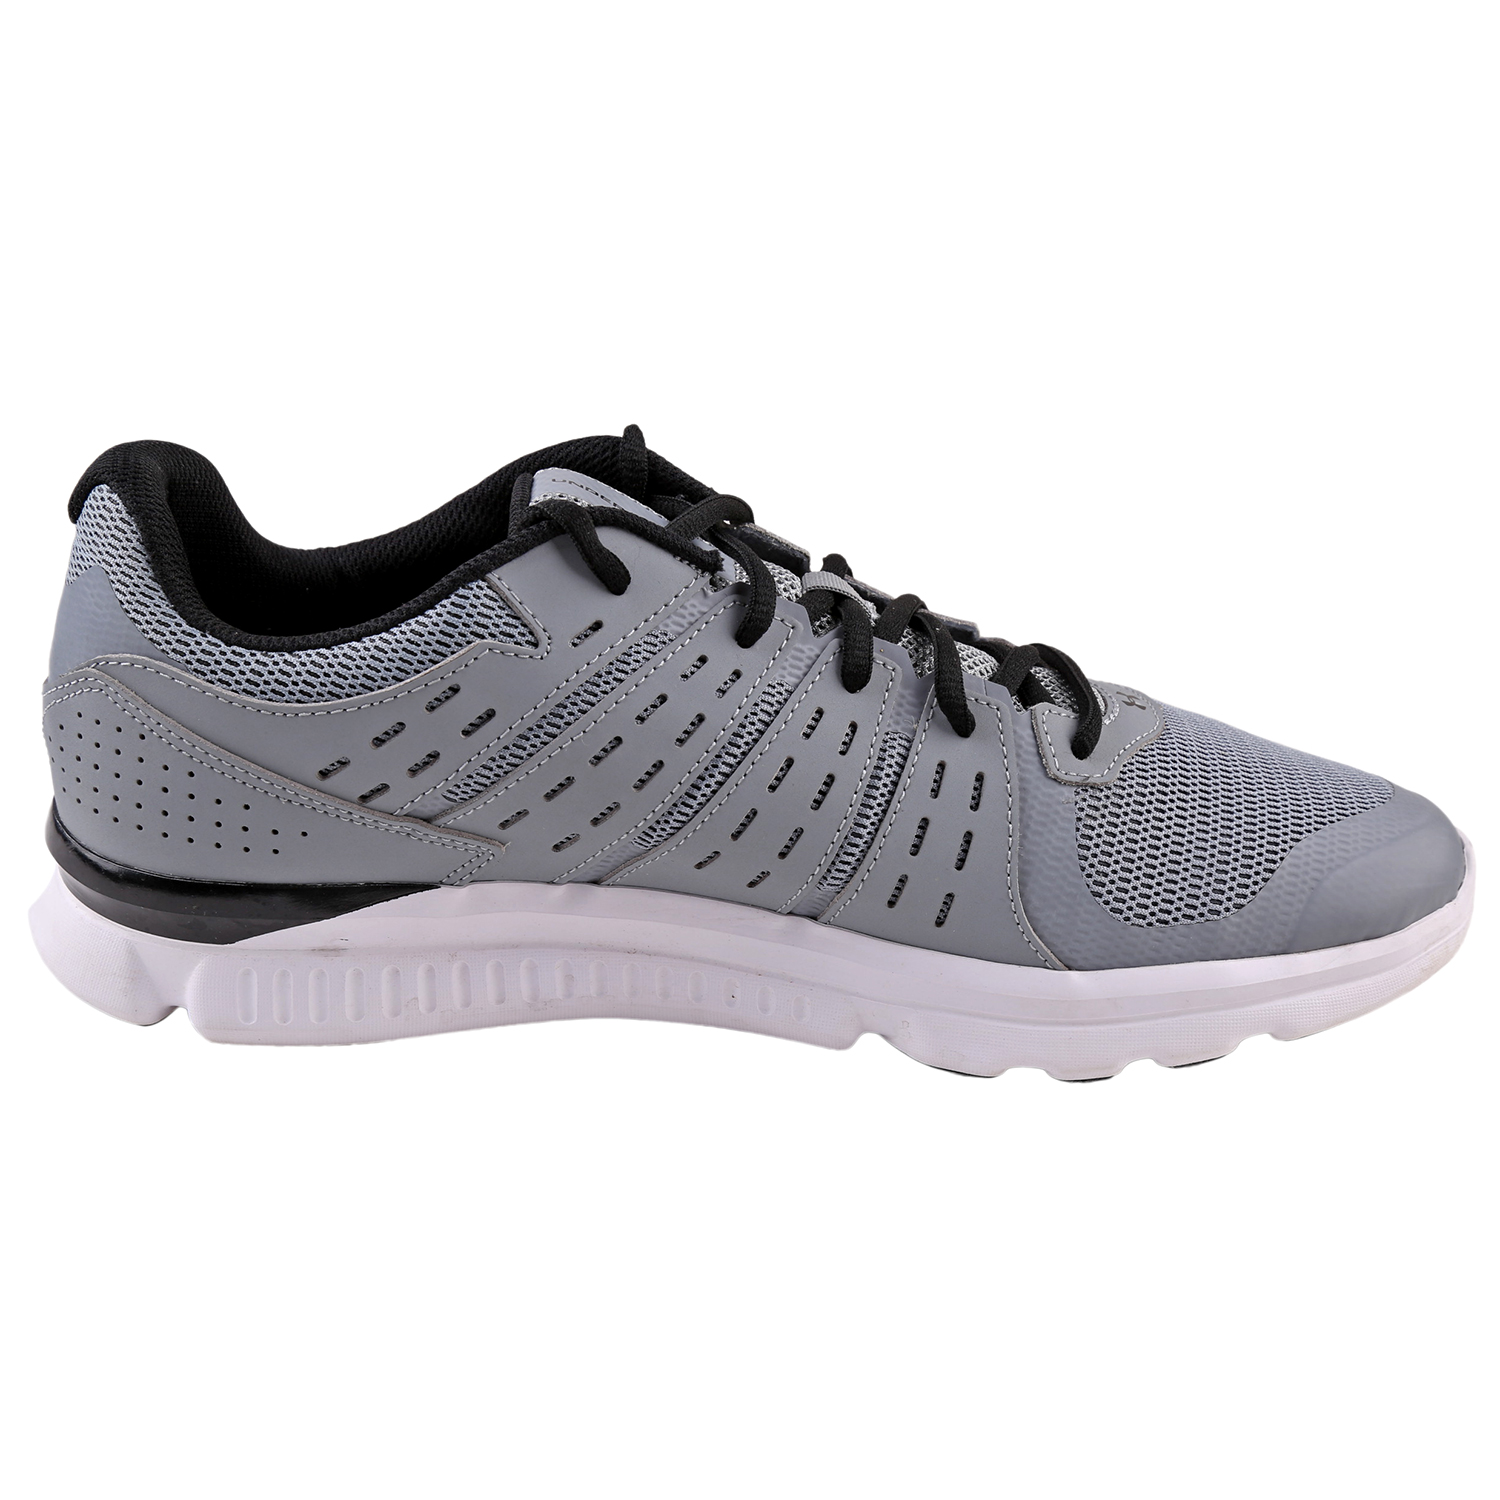 8bd0b95986d91 Under Armour Mens Micro G Speed Swift Run Shoes 1266208 Steel Black White 13